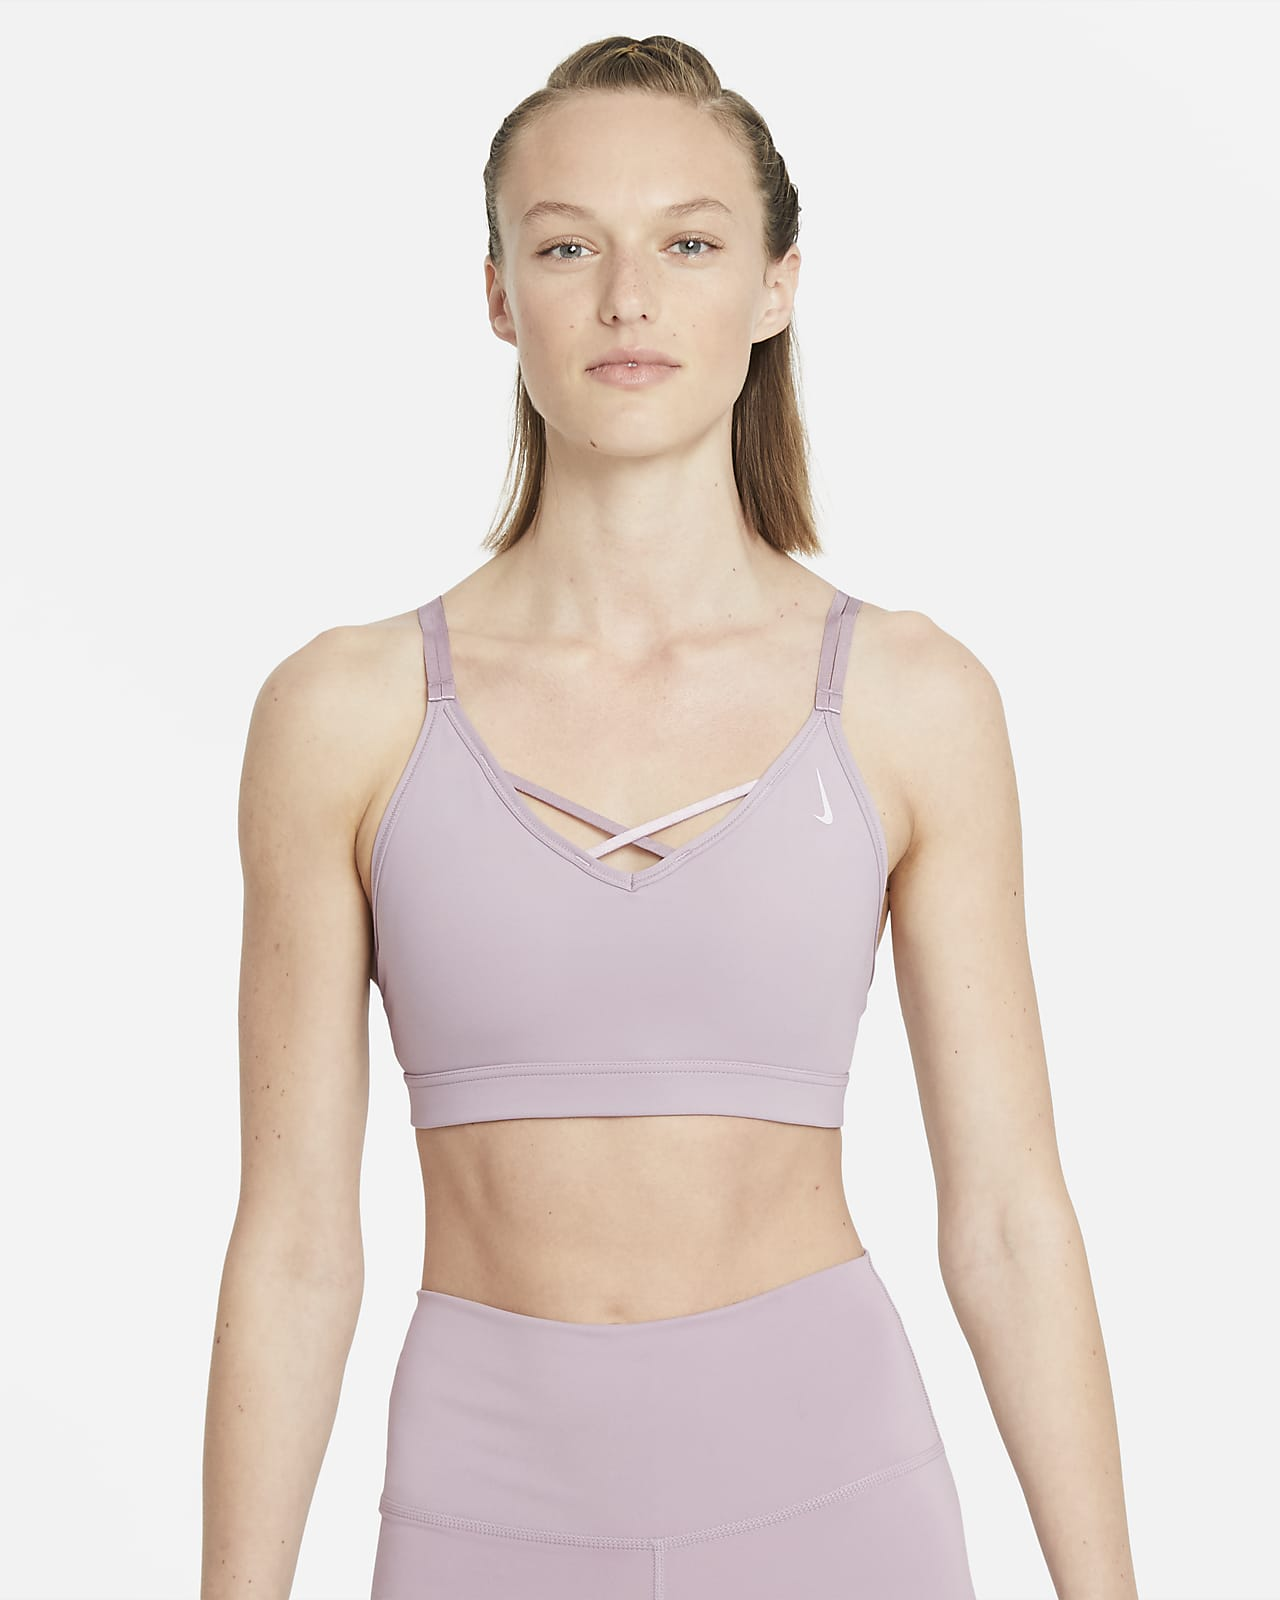 Nike Yoga Dri-FIT Indy Women's Light-Support Padded Strappy Sports Bra